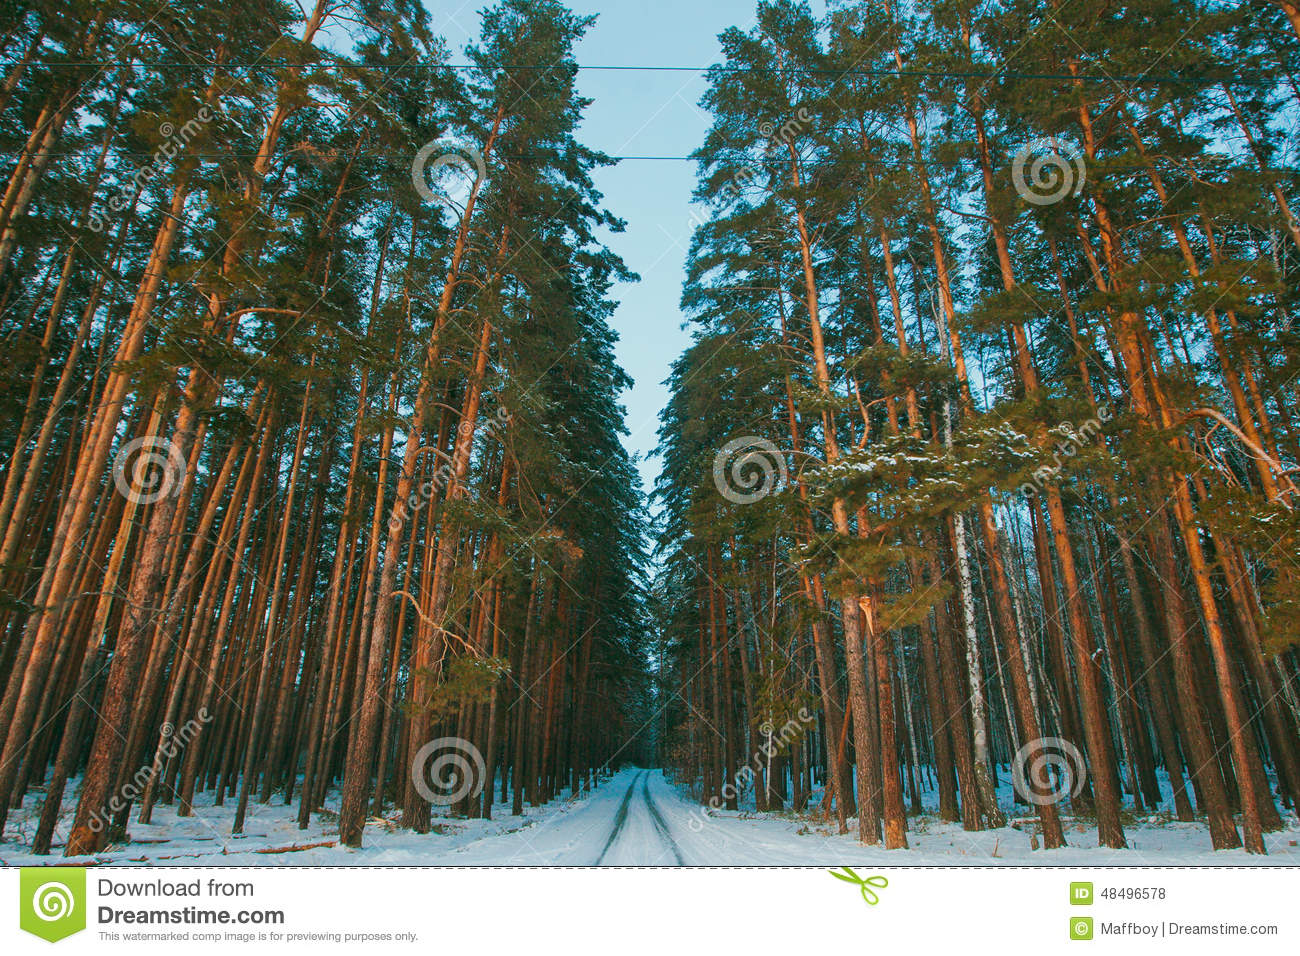 Snowy road in winter pine forest